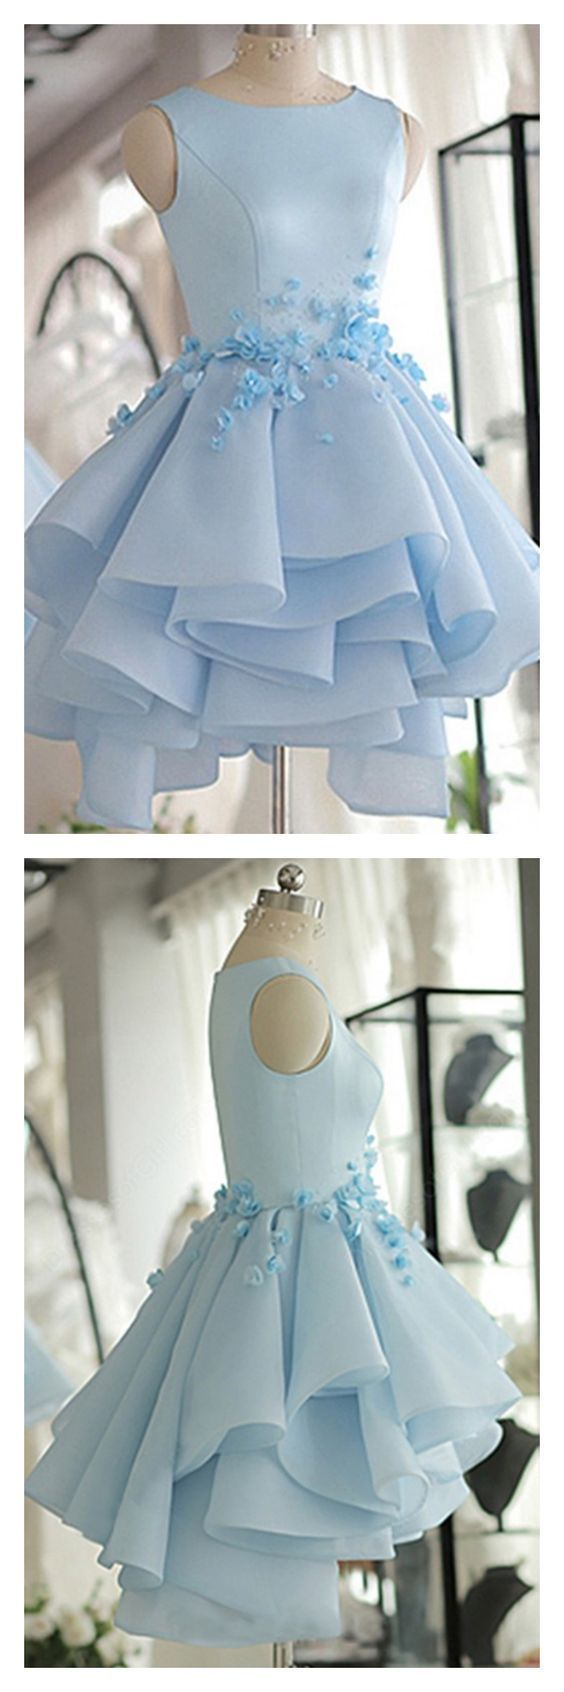 Sky Blue Layers Applique Short Homecoming Dresses Party Dresses Prom Dresses #fashiondresses#dresses#borntowear